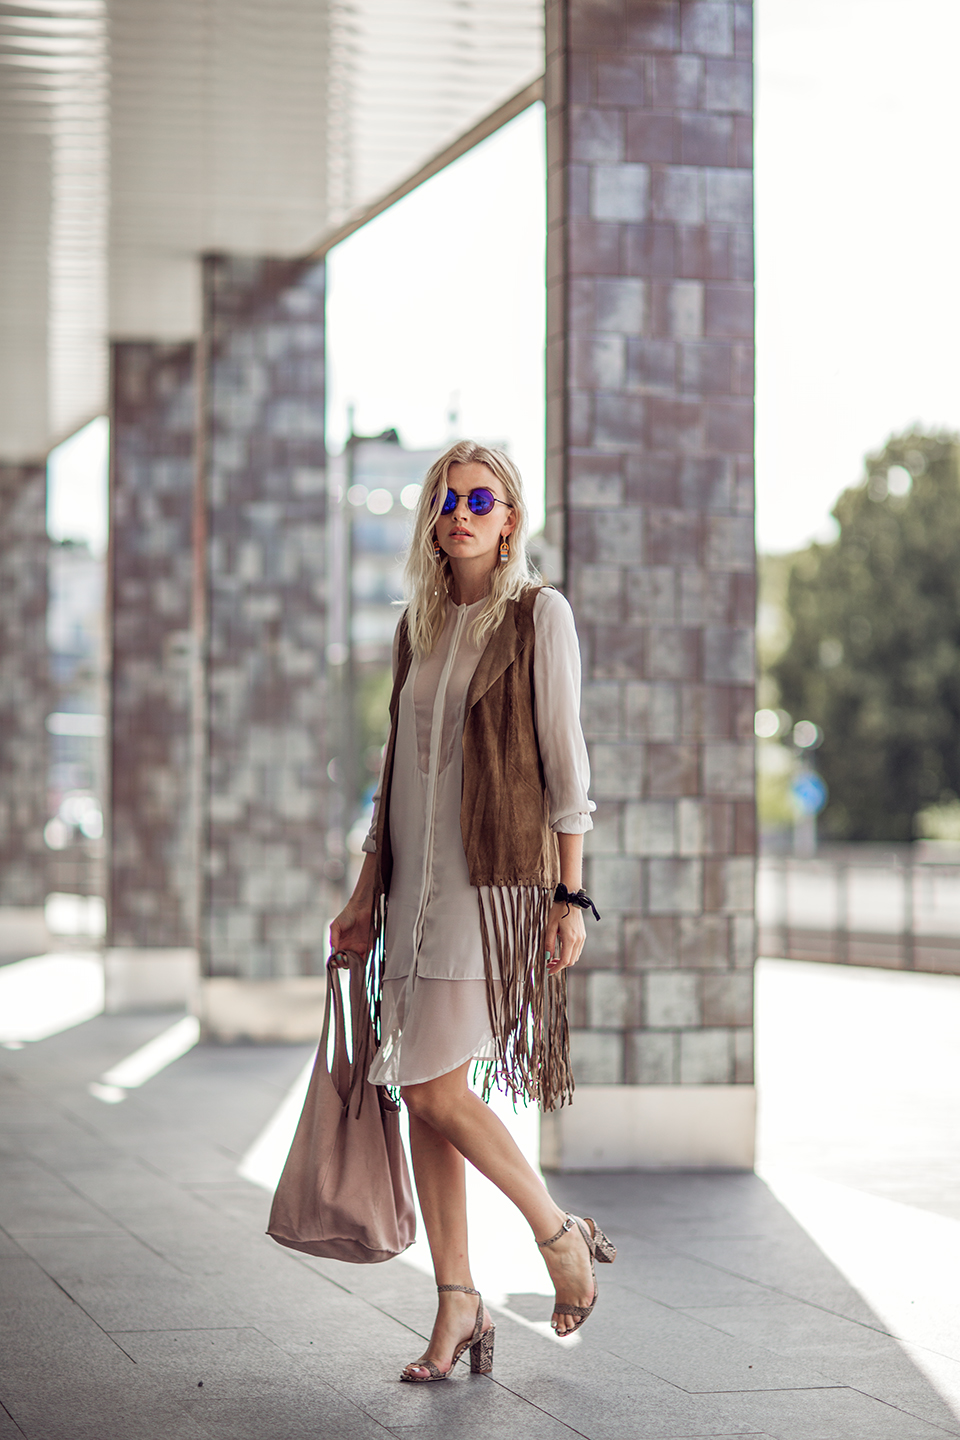 There is nothing more bohemian than a tasselled suede jacket! Elsa Ekman is a picture of boho beauty in this sheer dress and hippie shades, paired with patterned heels and a simple tote. Shirtdress: Samsøe & Samsøe, Jacket: PULZ jeans, Bag: Hunkydory, Shoes: River Island, Sunnies:H&M.